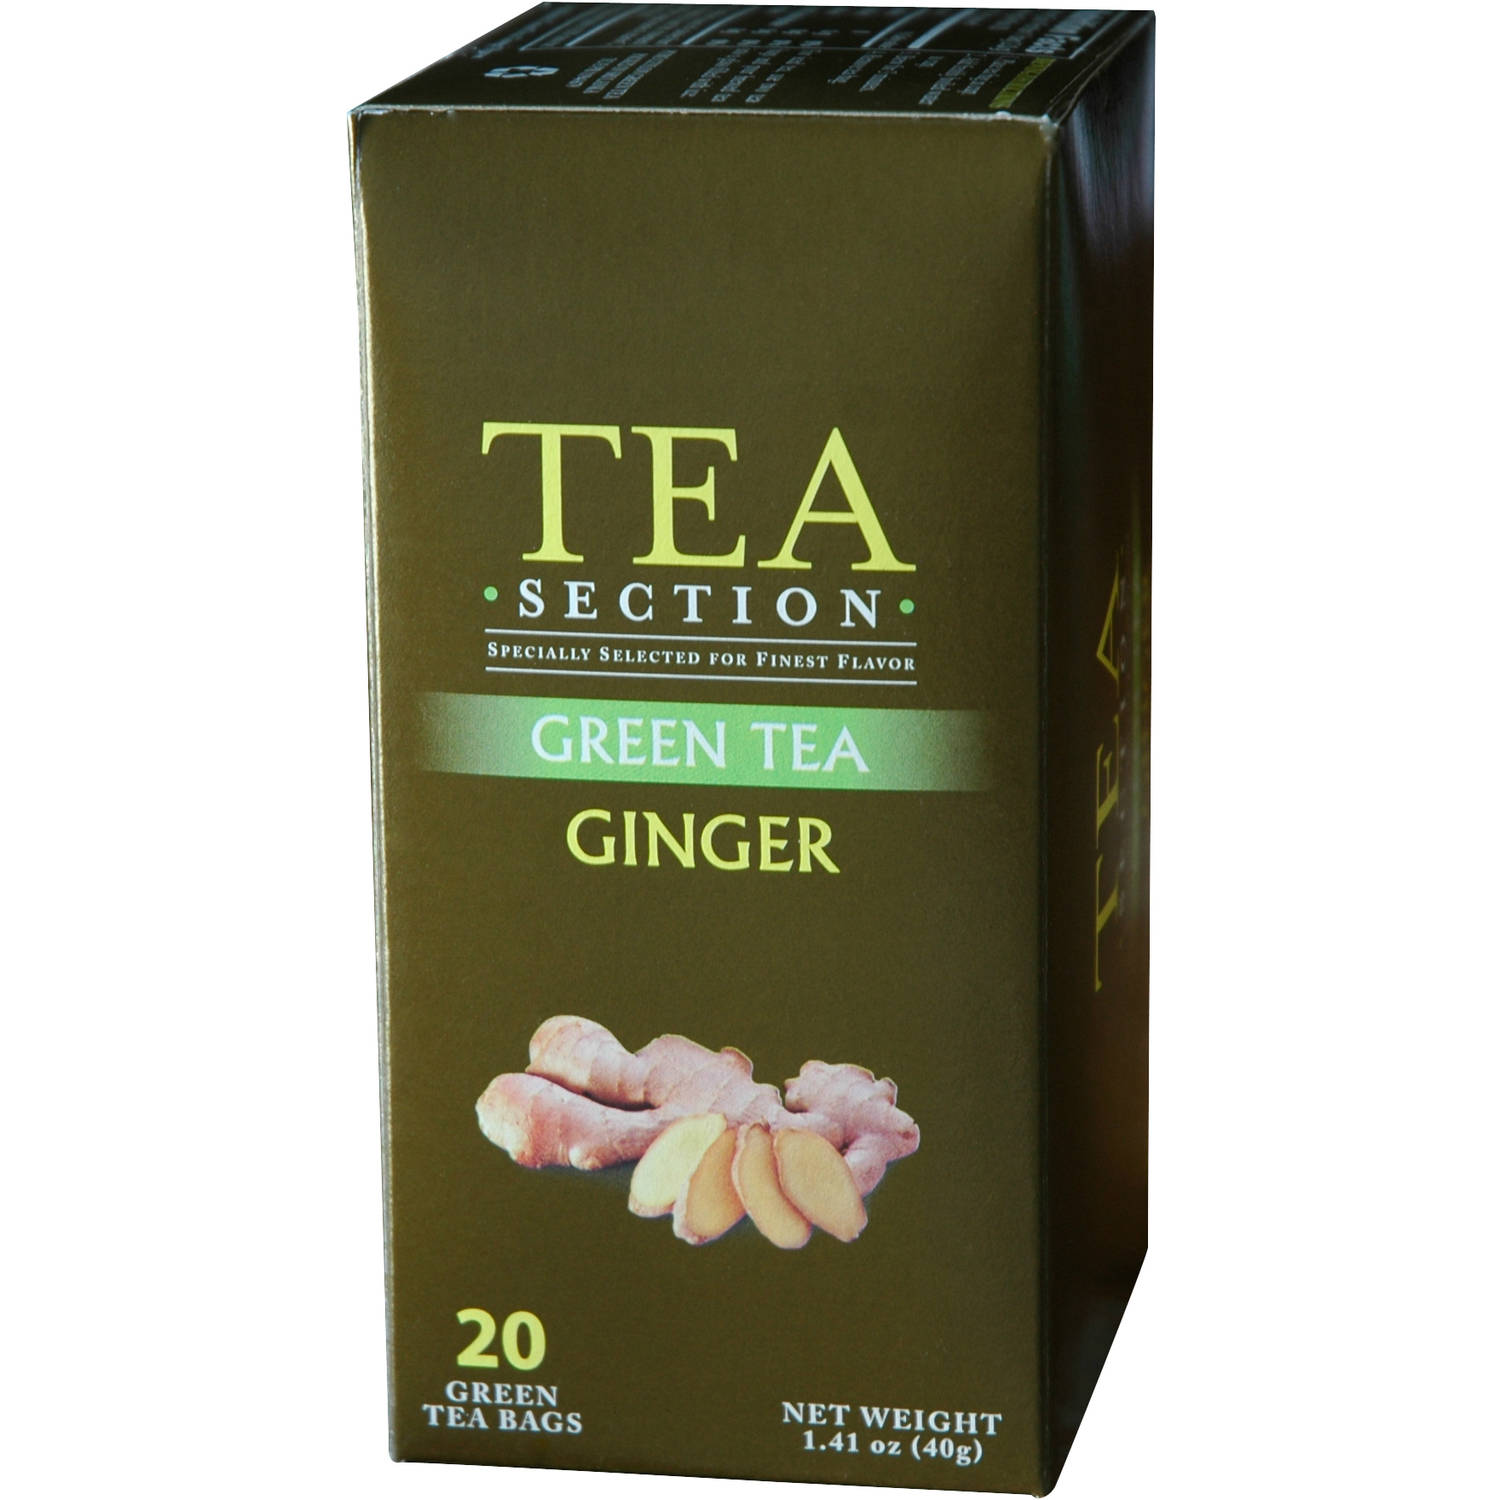 Tea Section Ginger Green Tea Bags, 20 count, 1.41 oz